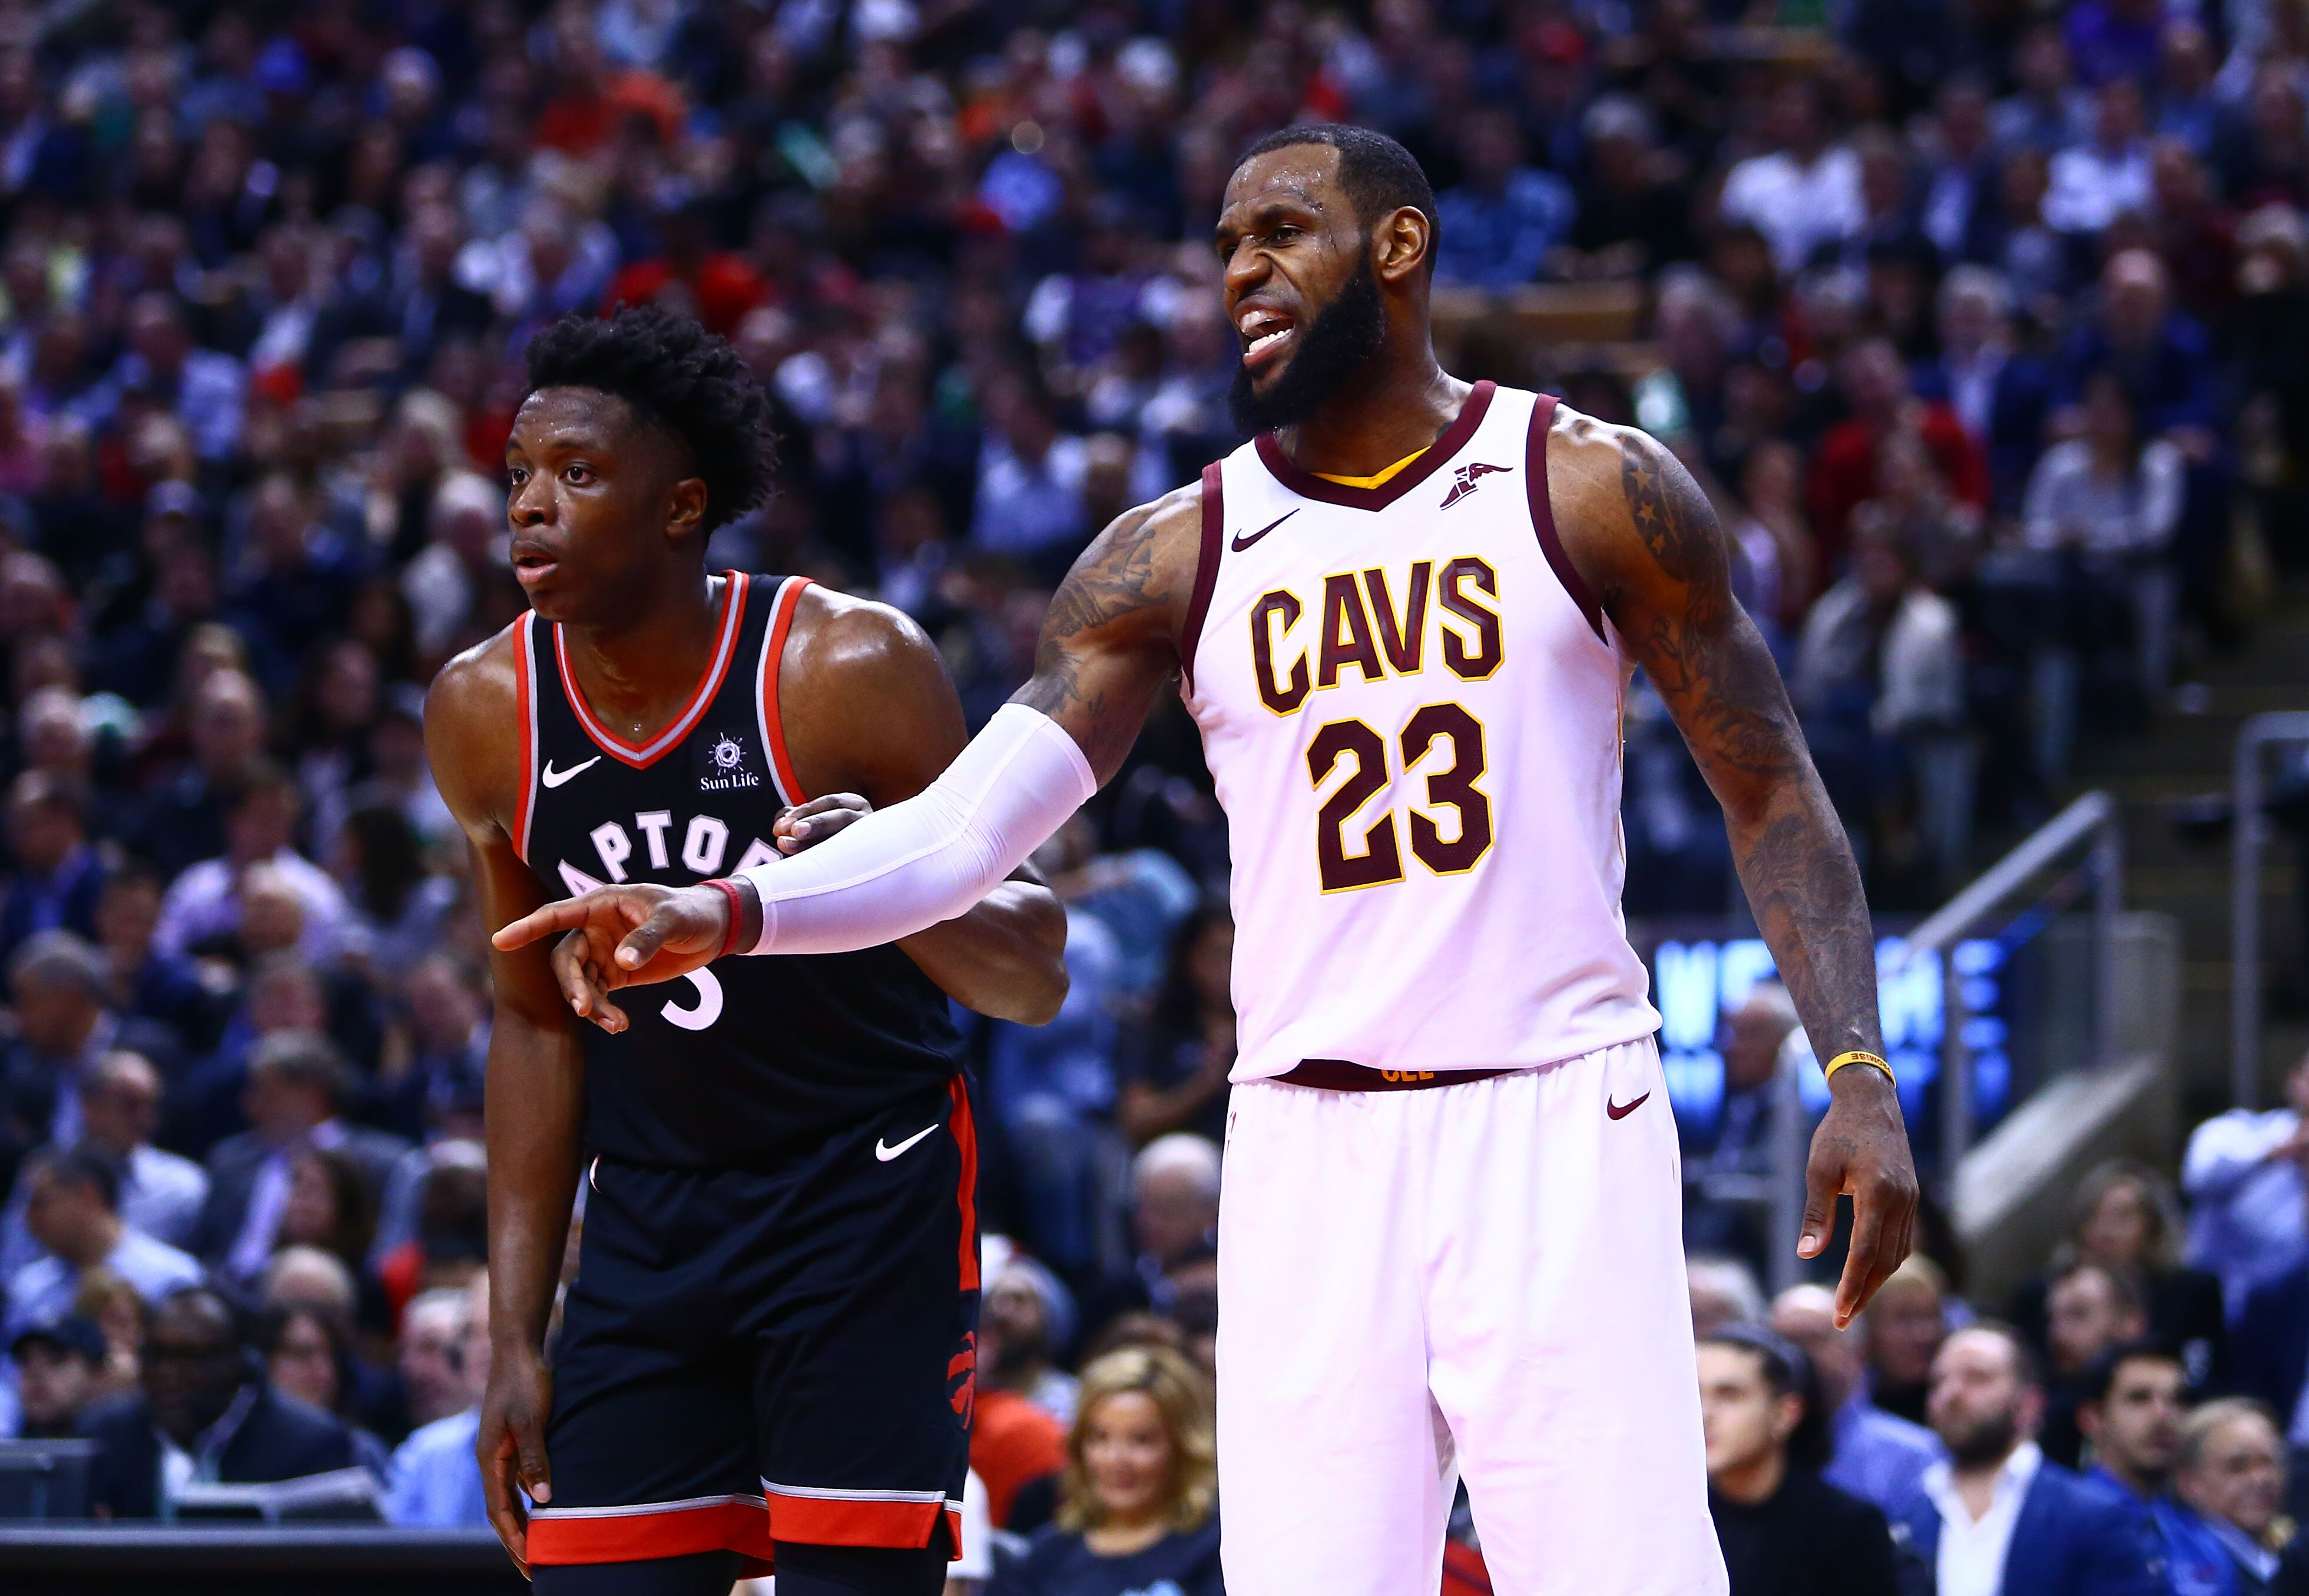 c5d303e5574b LeBron James is making a late push for the MVP award